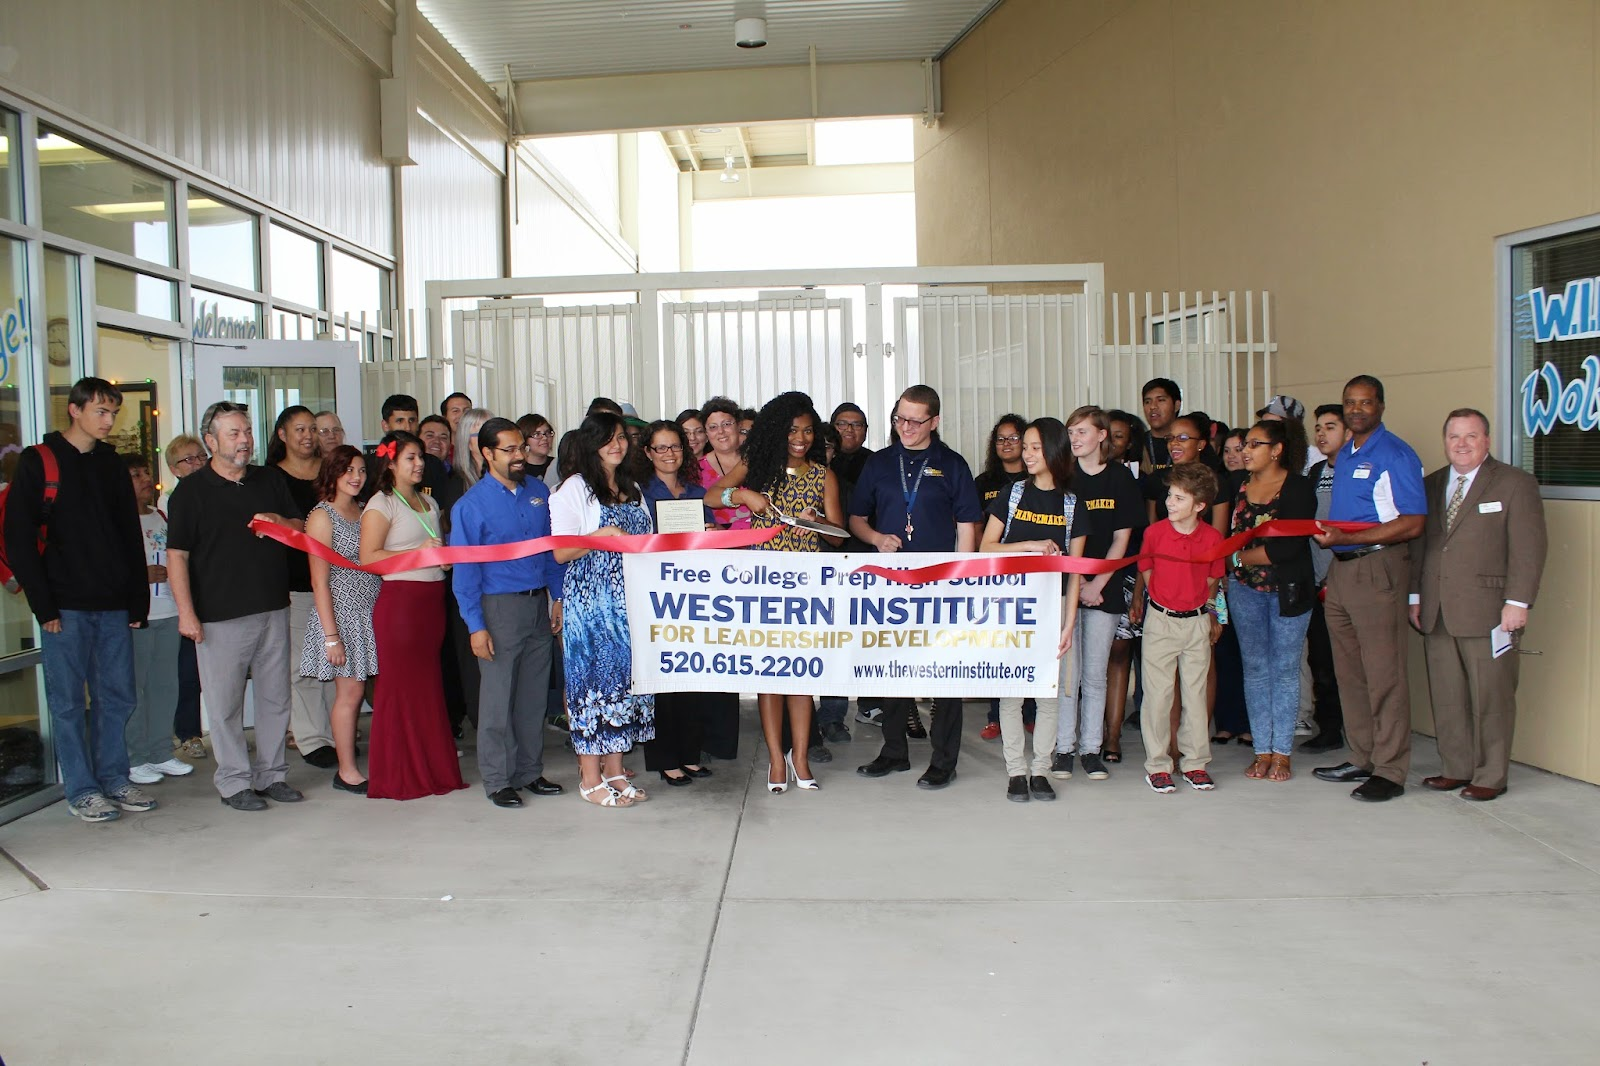 Western Institute High School's ribbon cutting occurred at the Changemaker Fair. Students pitched social venture projects. Judges including Autumn Williams, Director of Ashoka's Changemaker Schools Network and Juan Ciscomani, Director of the Governor's Southern Arizona office, awarded prizes. Public donations supported students' projects. Results were celebrated at their May Exhibition.  The Western Institute for Leadership Development 1300 S. Belvedere Avenue, 85711 (520) 615-2200